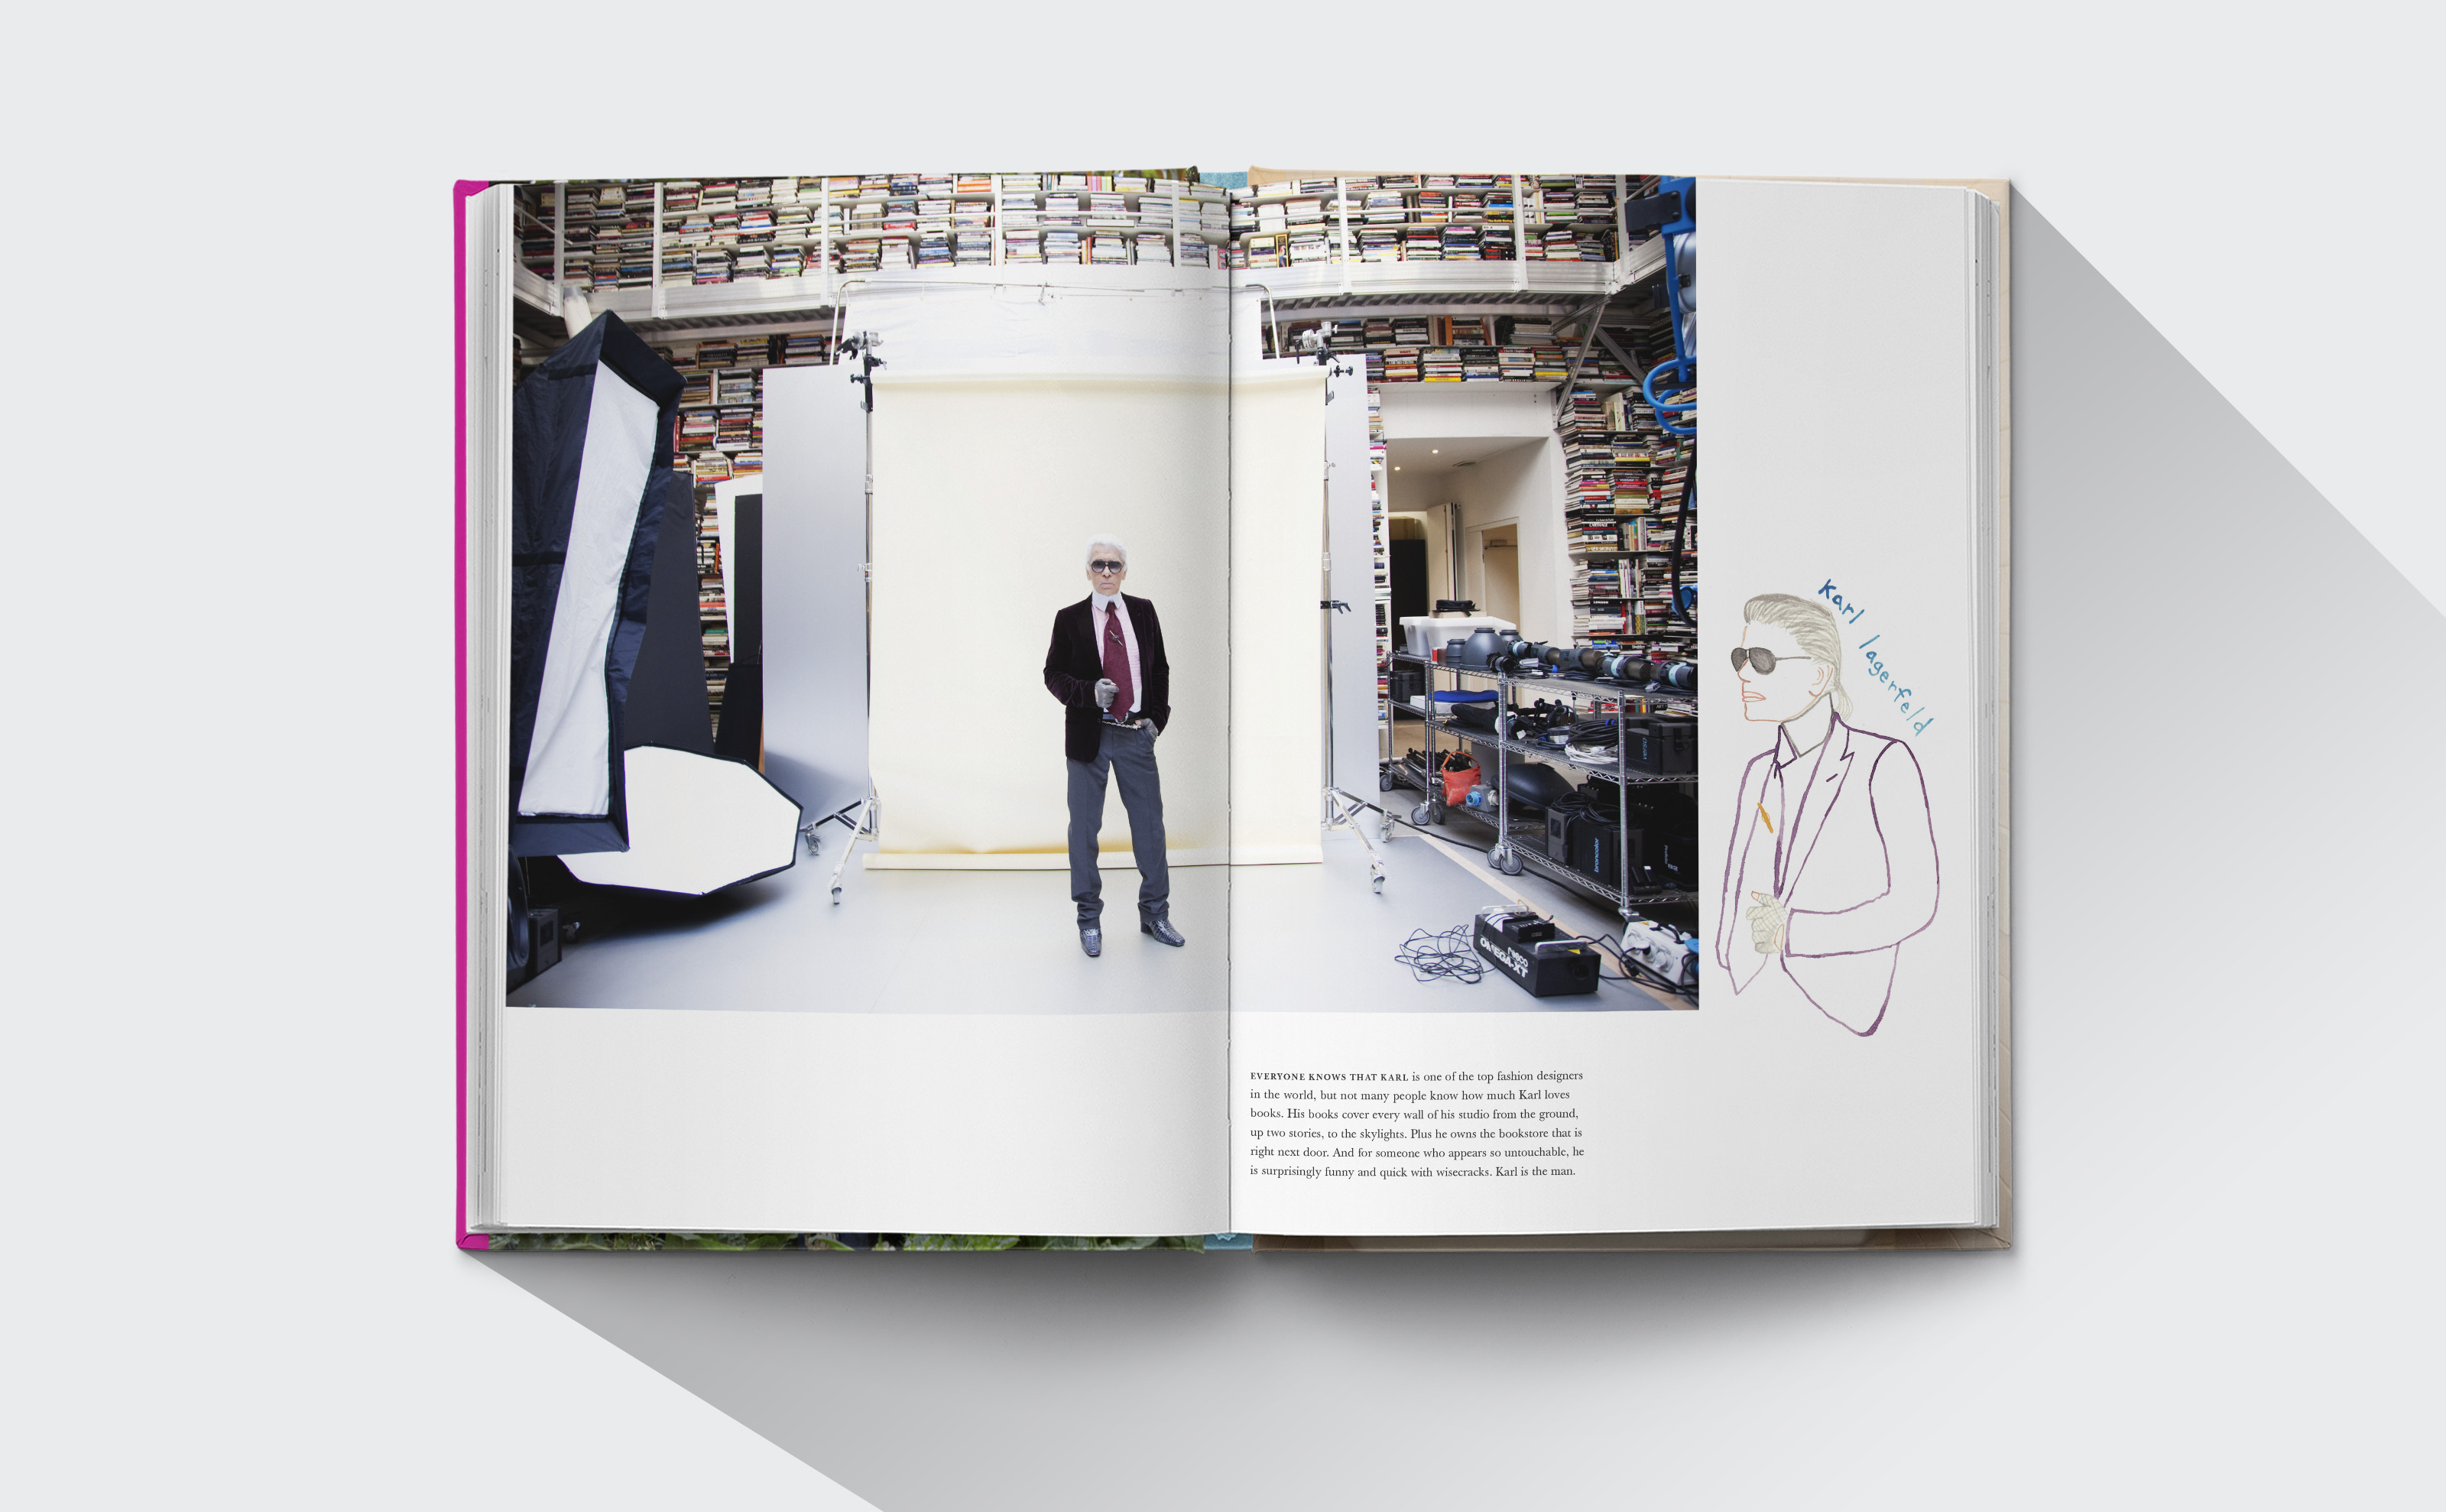 The Selby Todd Selby book design with Karl Lagerfeld photo